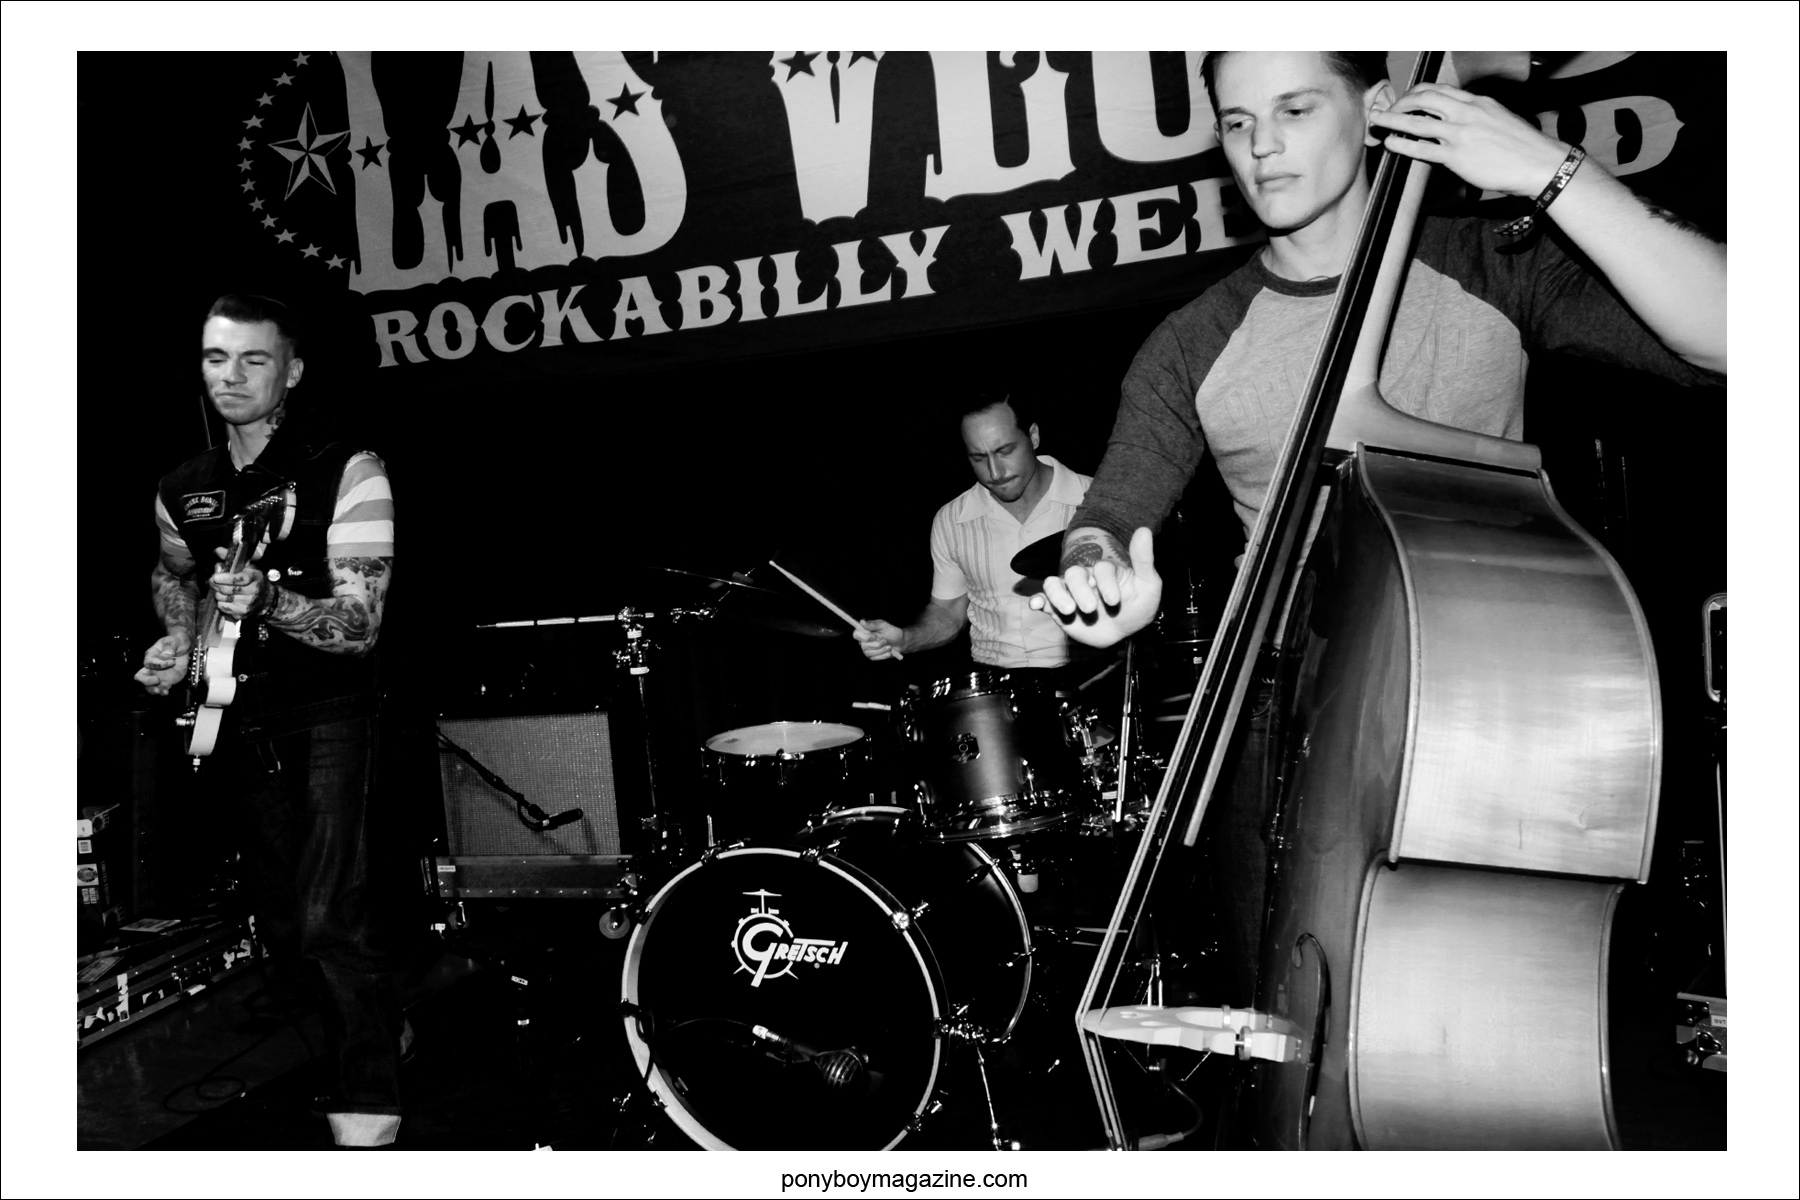 The Pat Capocci Combo photographed at Viva Las Vegas rockabilly weekender by Ponyboy Magazine photographer Alexander Thompson.